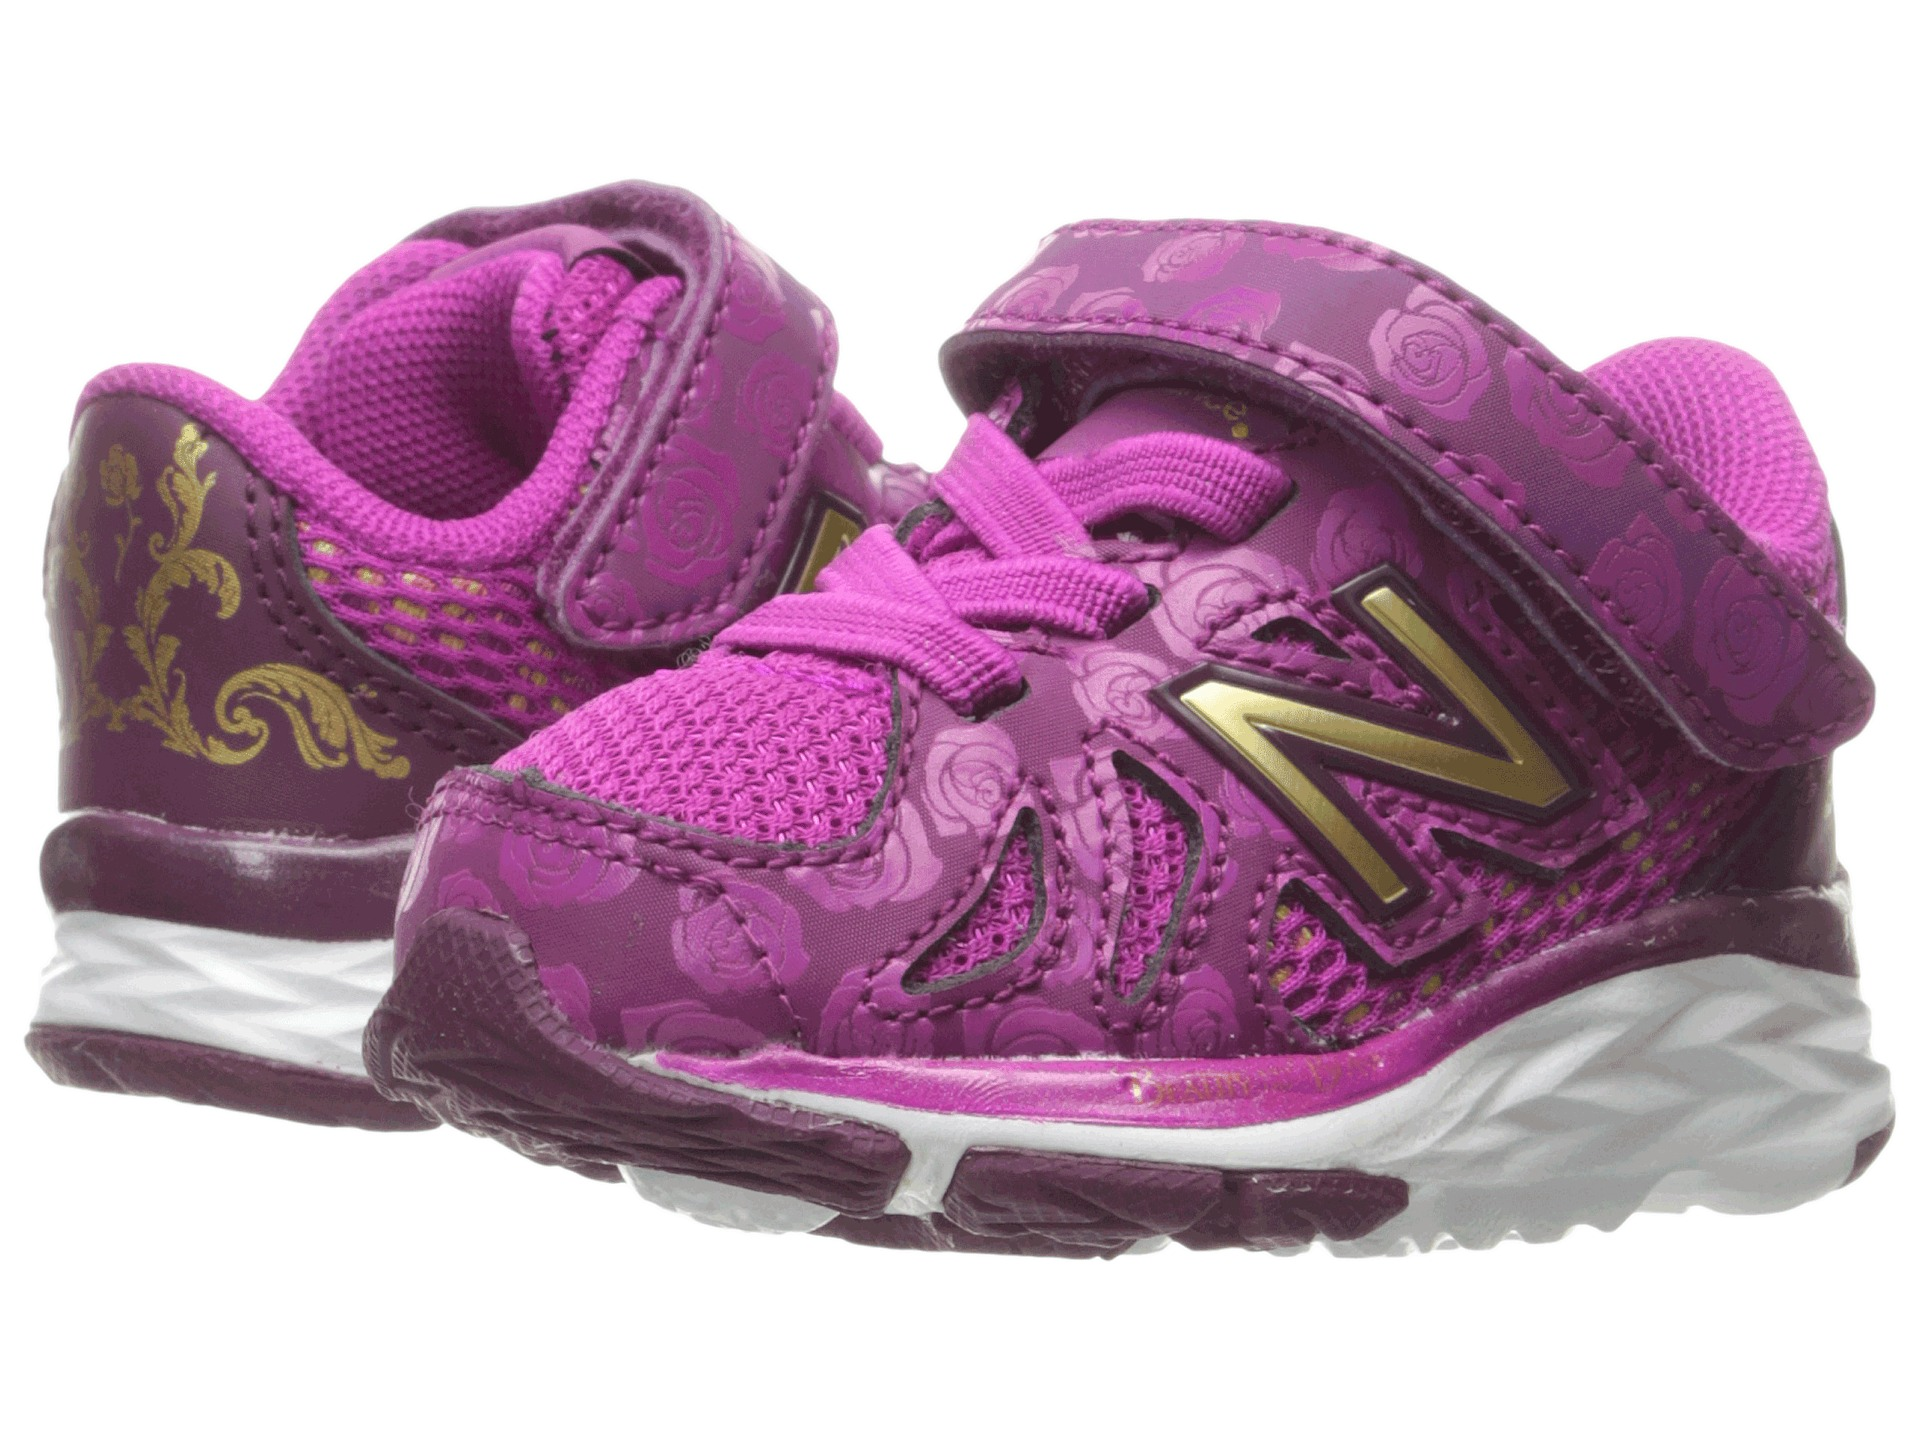 New Balance  Infant Girls Shoes Purple Review